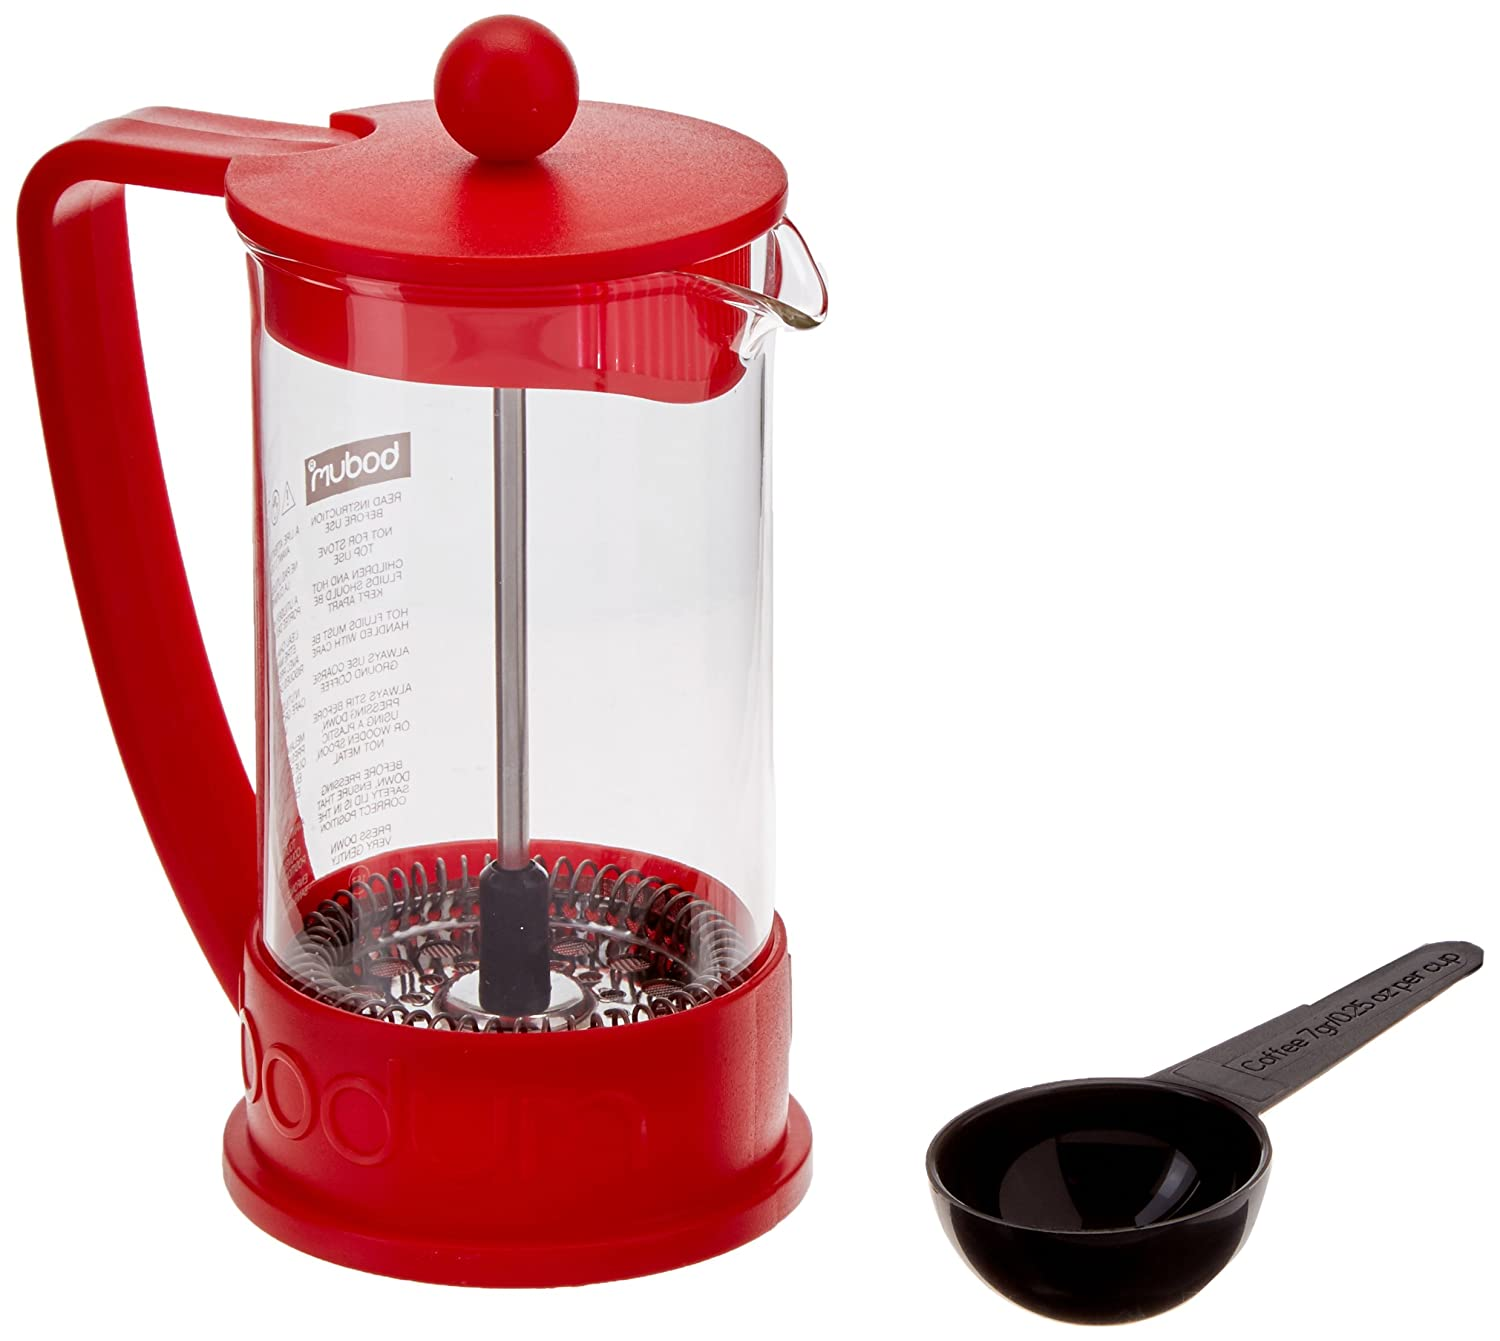 Bed bath beyond french press - Amazon Com Bodum Brazil 3 Cup French Press Coffee Maker 12oz Colors Vary Kitchen Dining